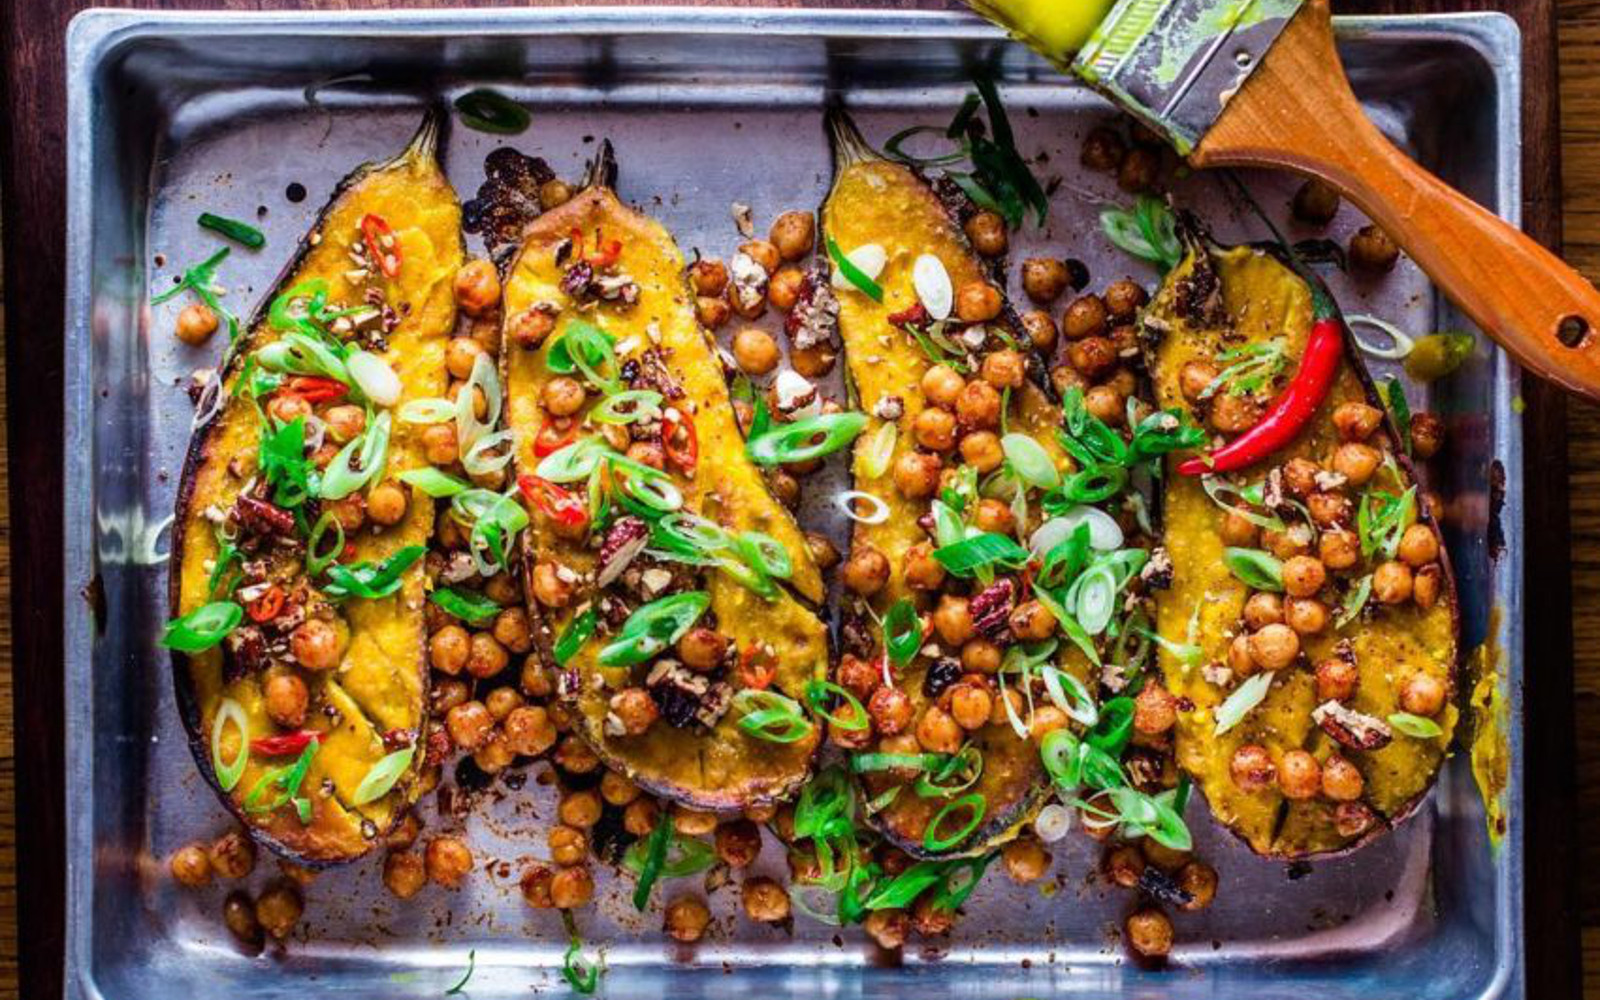 Miso-Glazed Eggplant With Spicy Chickpeas